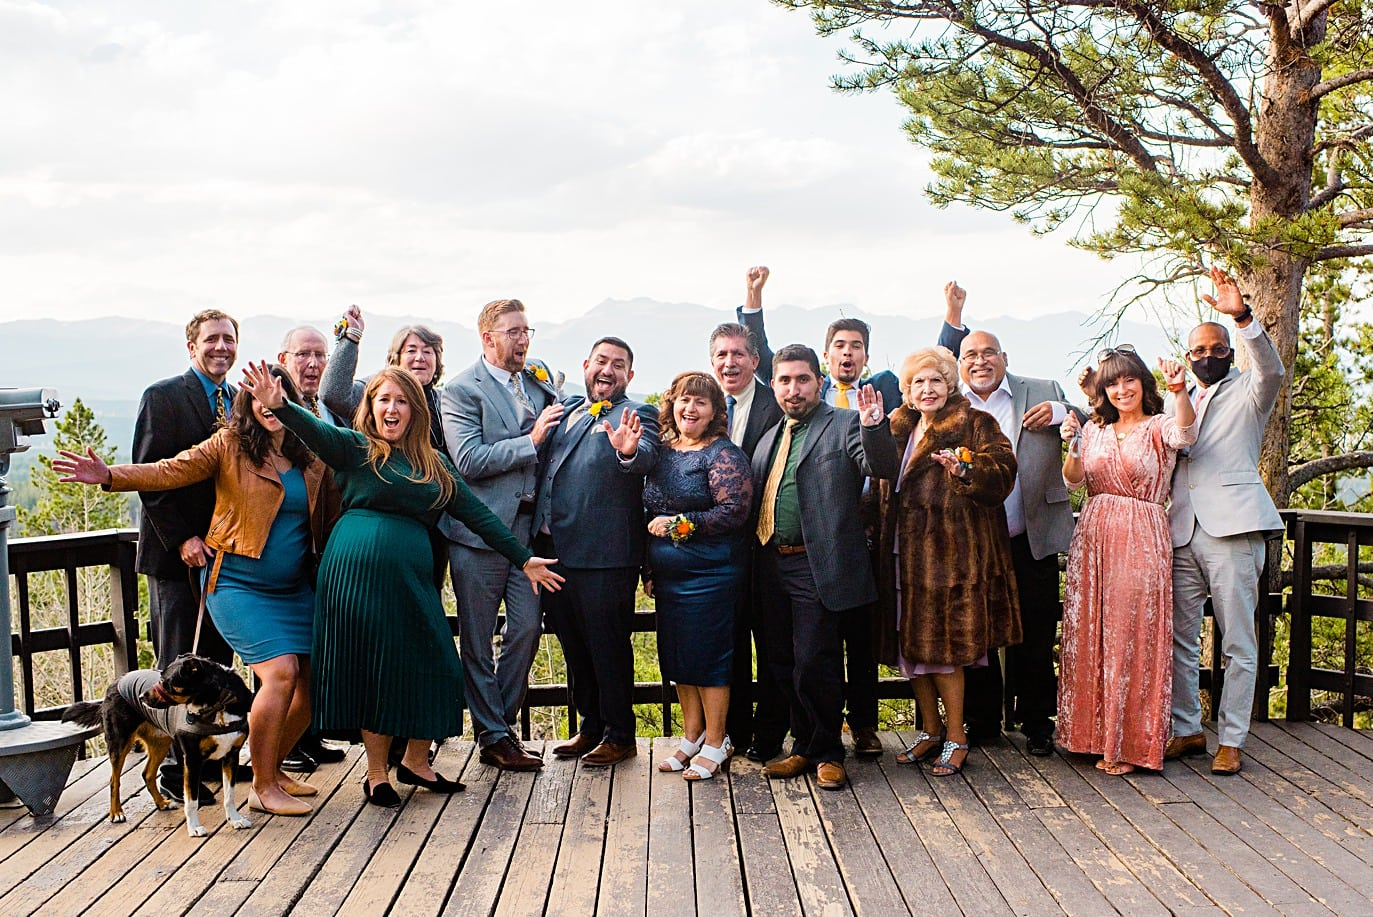 guests cheer at Panorama point during LGBTQ wedding by Colorado LGBT photographer Jennie Crate